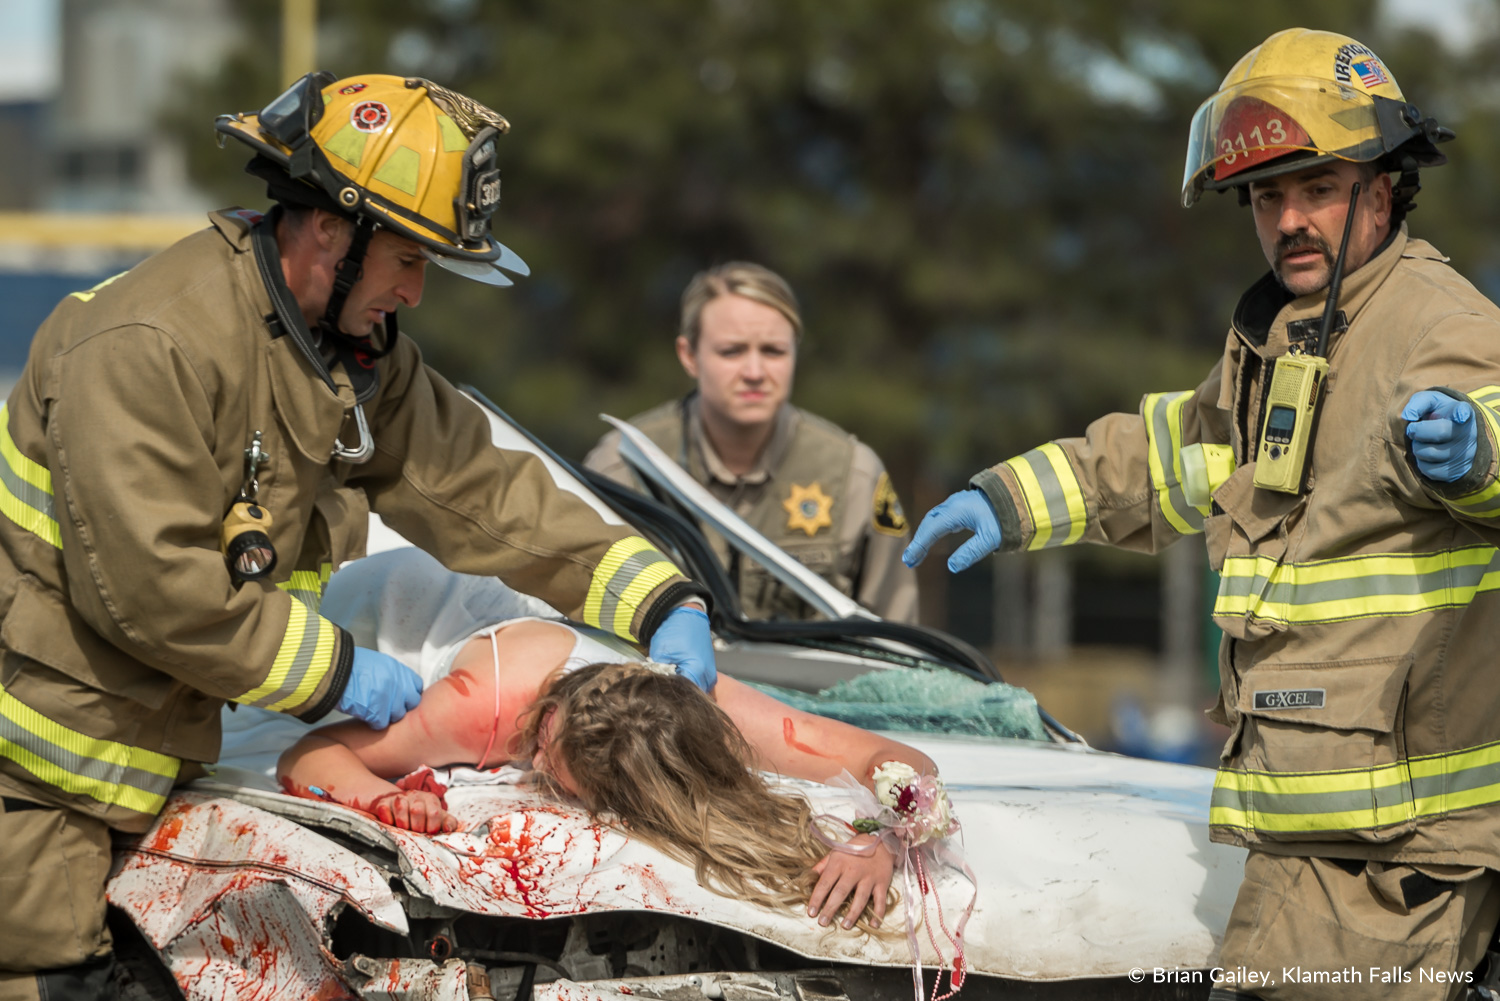 Operation Prom Night, a staged DUII car crash to teach teens the reality of drinking and driving. Kaila Mick and members of KCFD1 and Deputy Petersen of the KCSO are seen participating in the simulation April 19, 2018 (Brian Gailey)